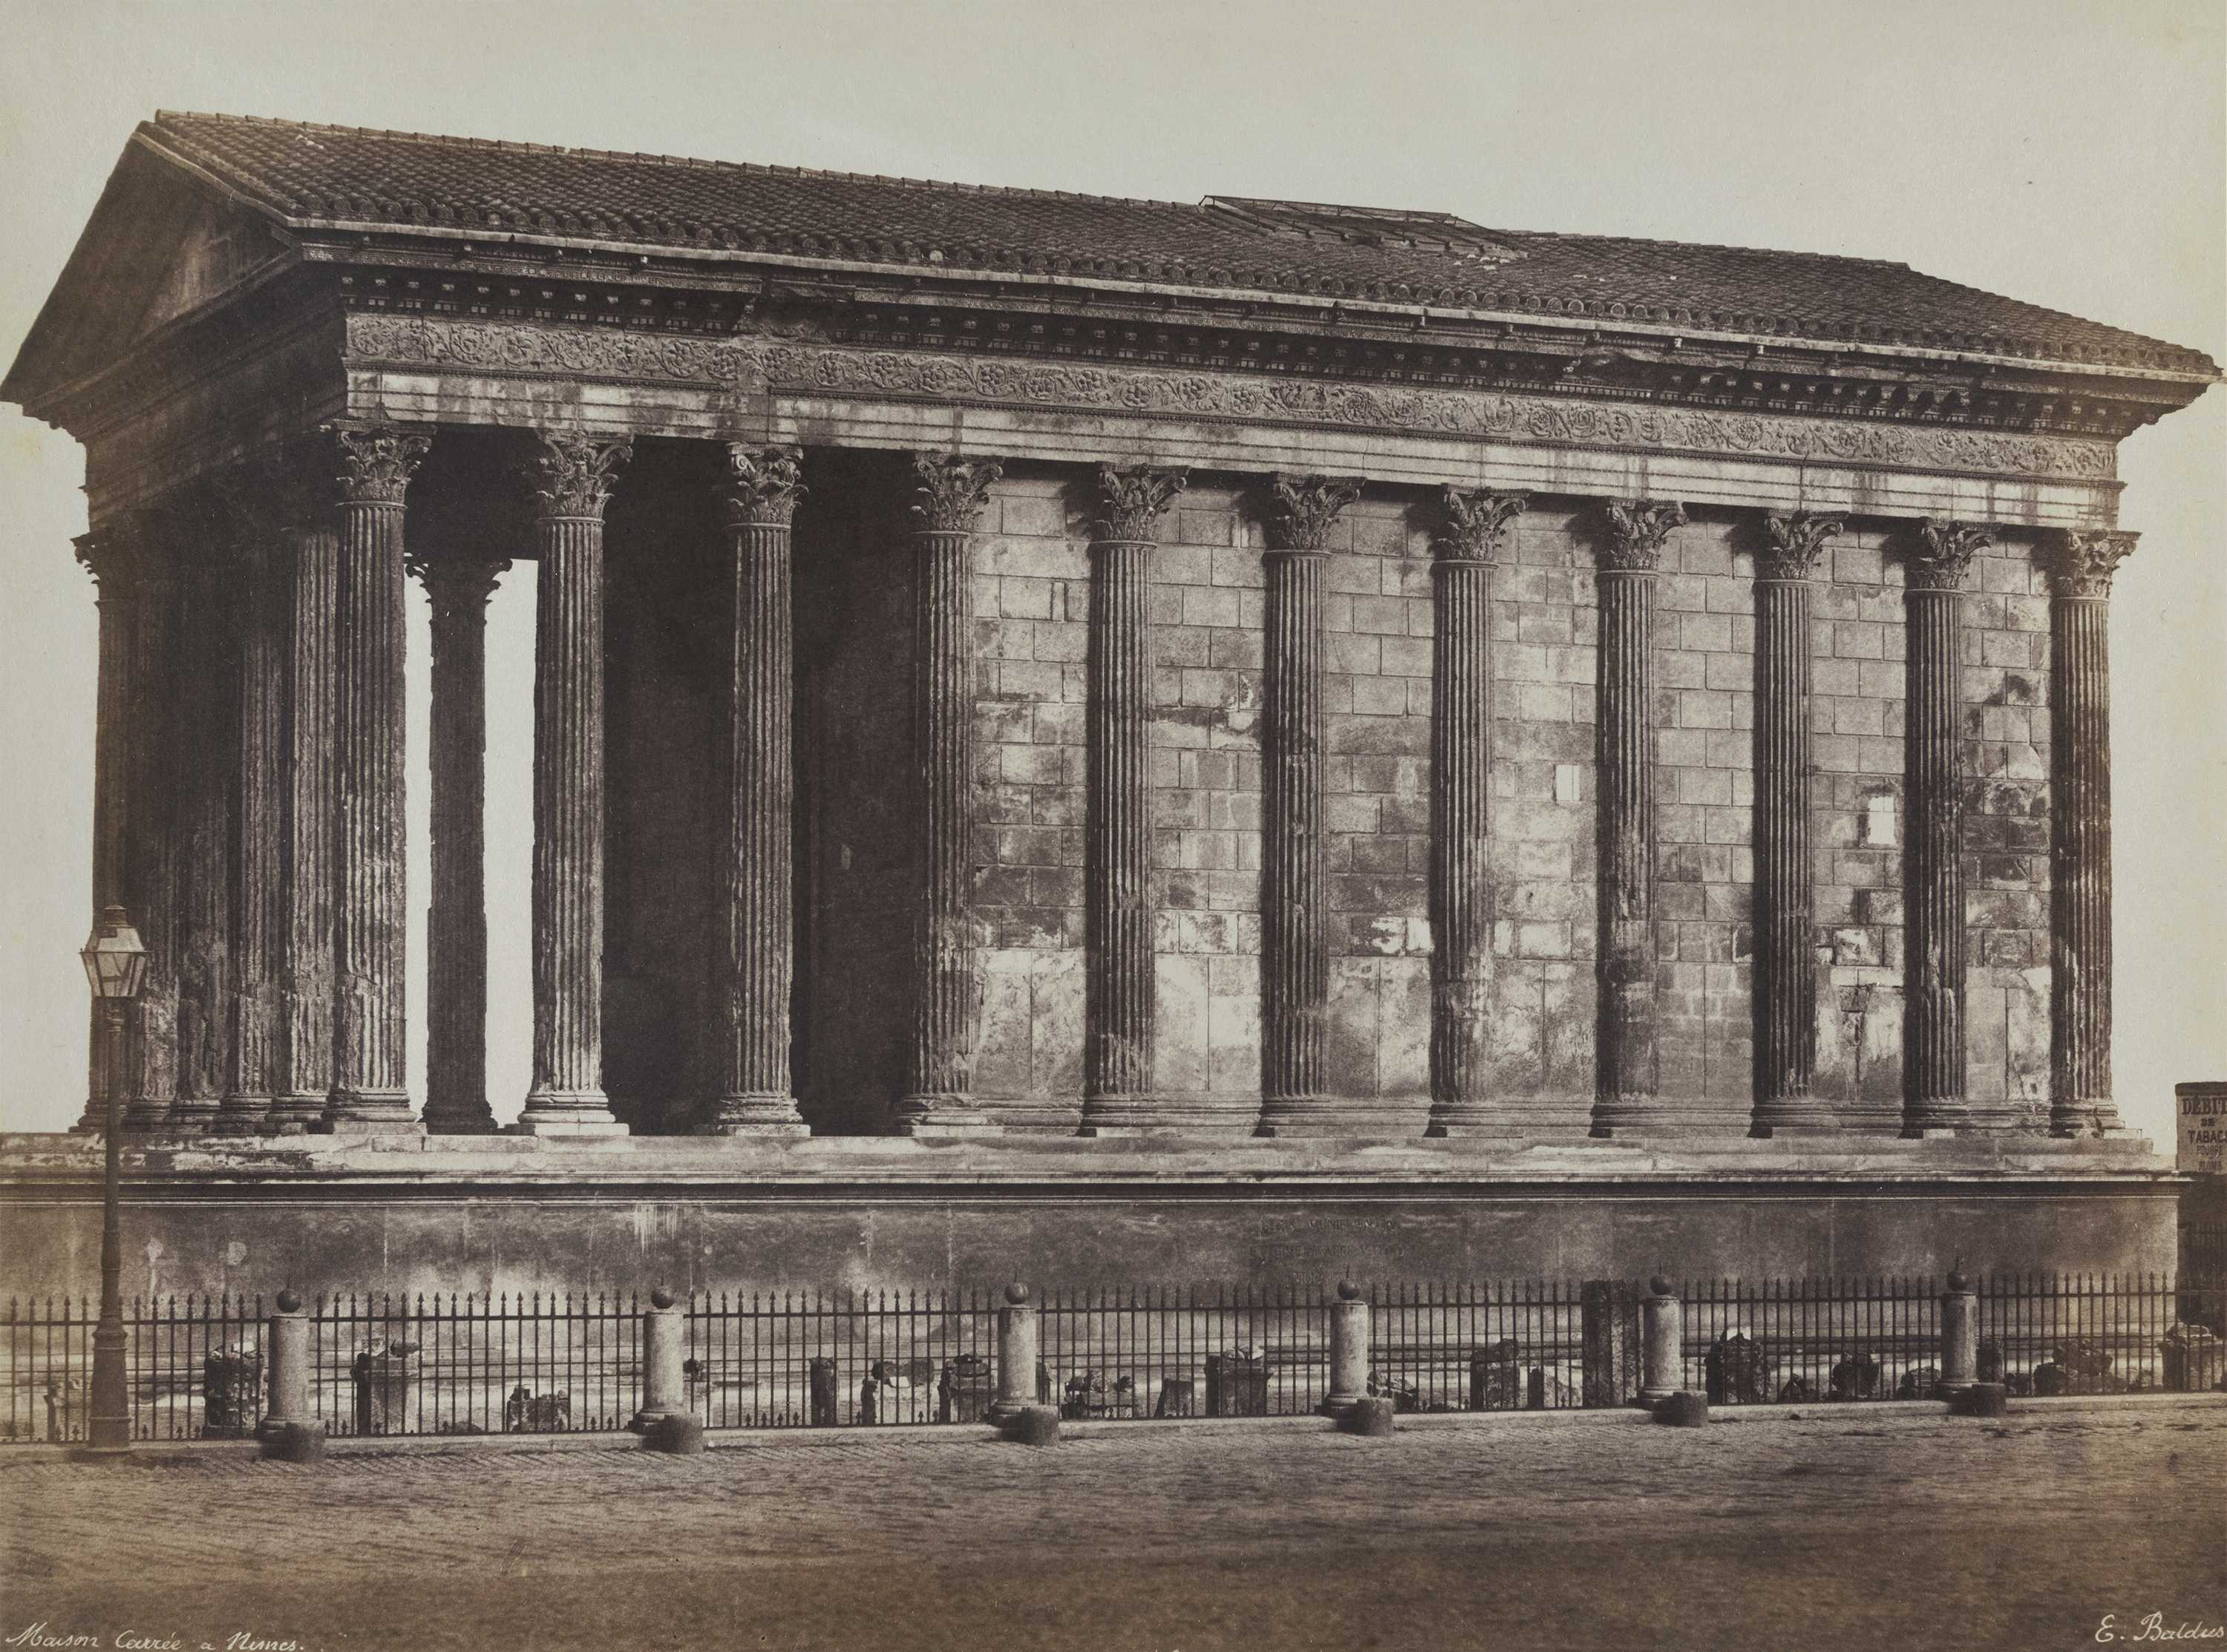 Édouard-Denis Baldus (French, born Prussia, 1813–1889) Maison Carée À Nîmes, 1853 Salted paper print Chrysler Museum of Art, museum purchase in memory of Alice R. and Sol B. Frank 98.9